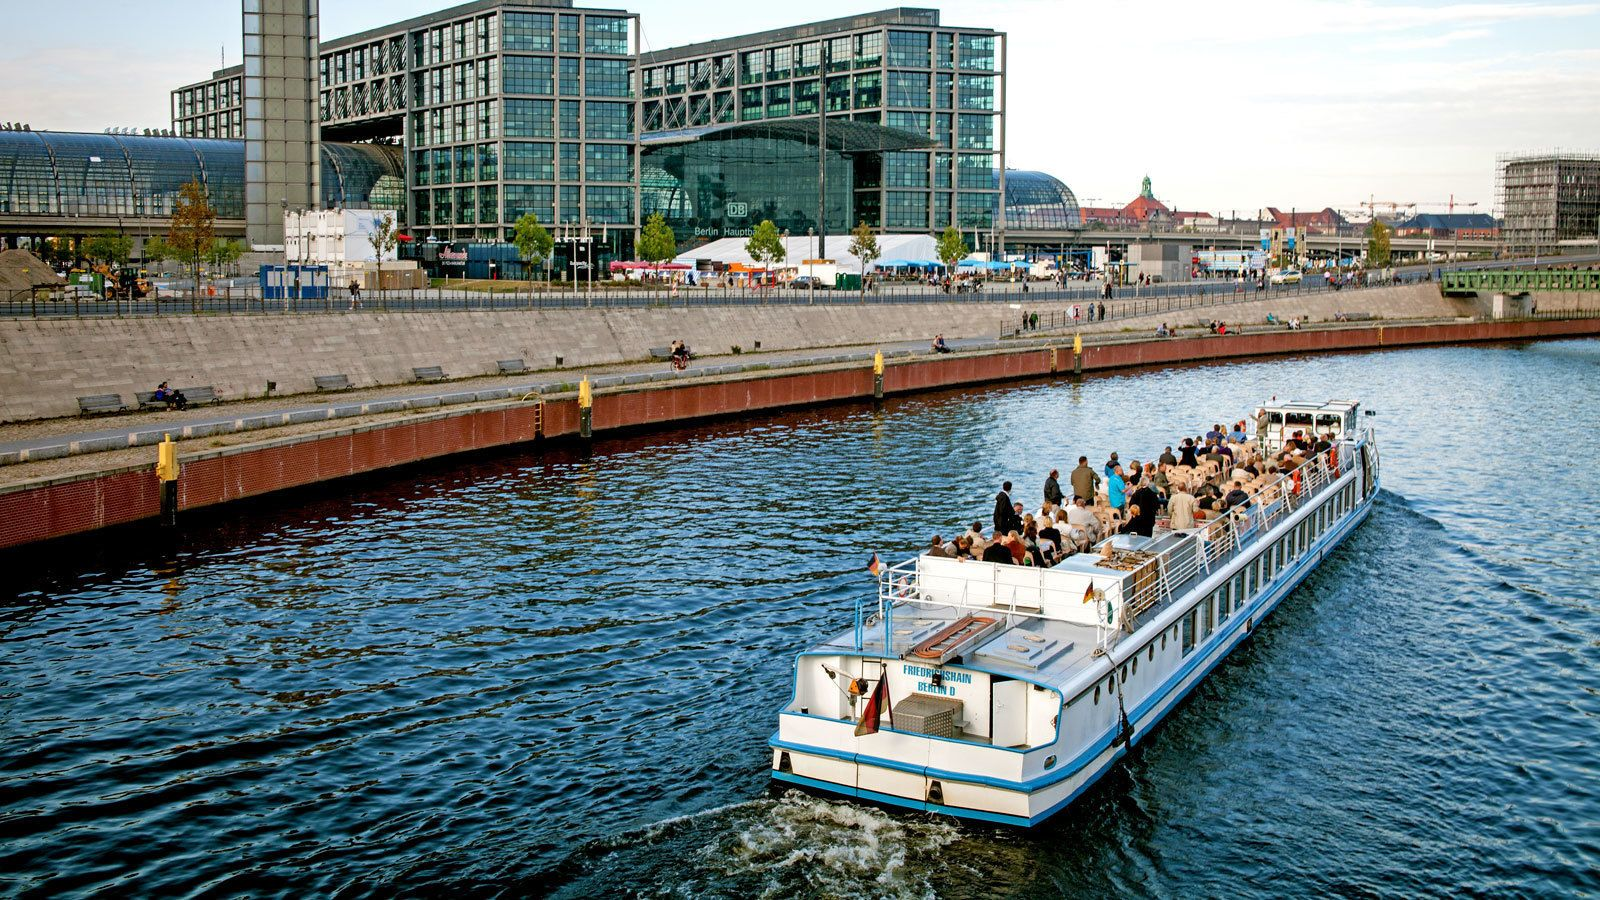 taking a boat through the water channel in Berlin